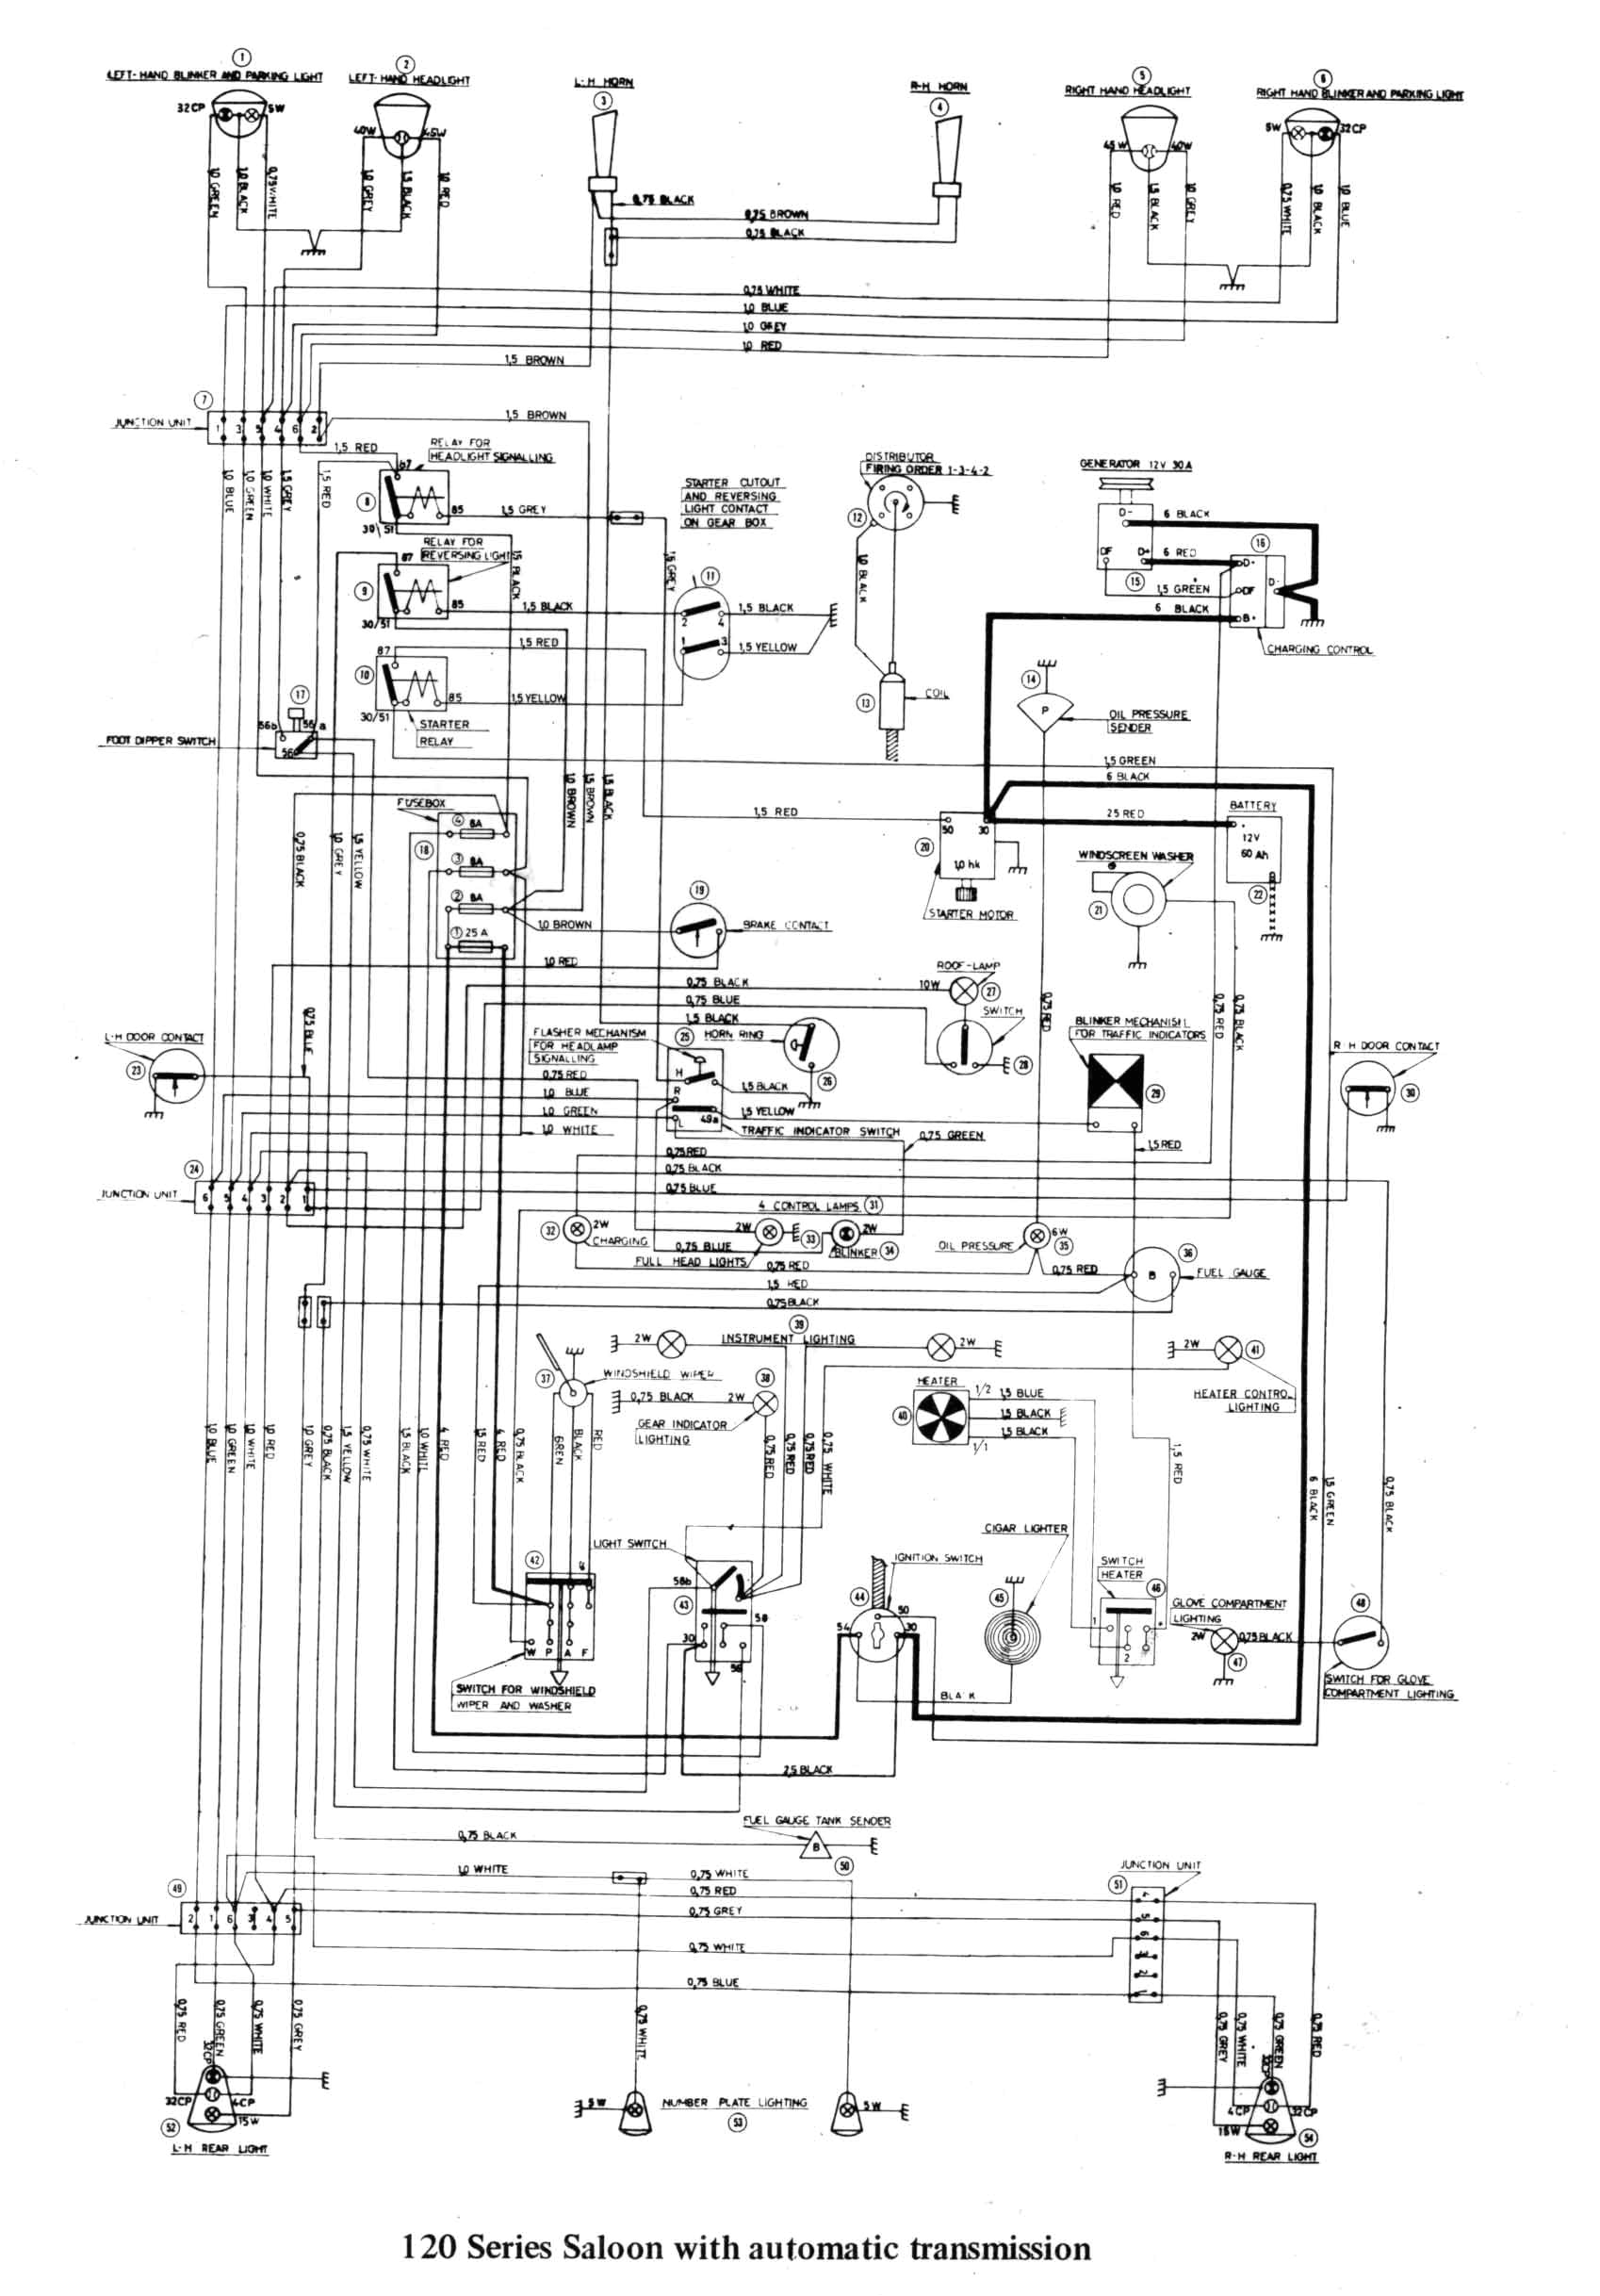 volvo wiring harness 20581615 wiring diagram used volvo wiring diagrams xc90 volvo wiring diagrams